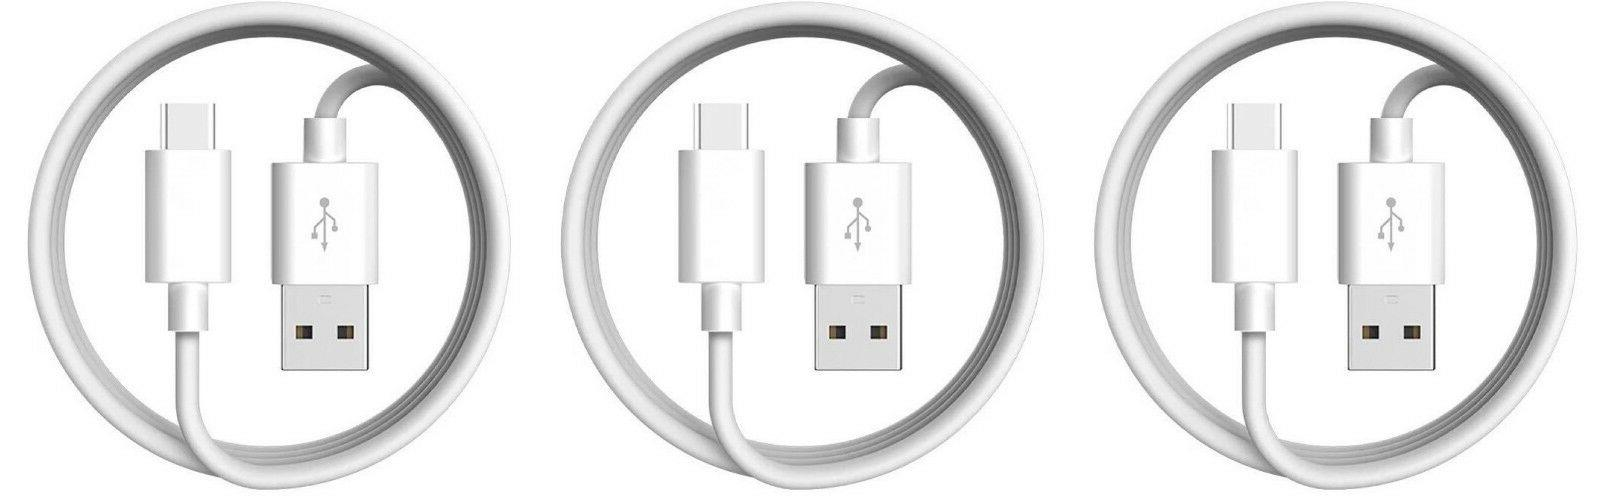 10x Type C USB-C Cable Power Charger OEM Quality